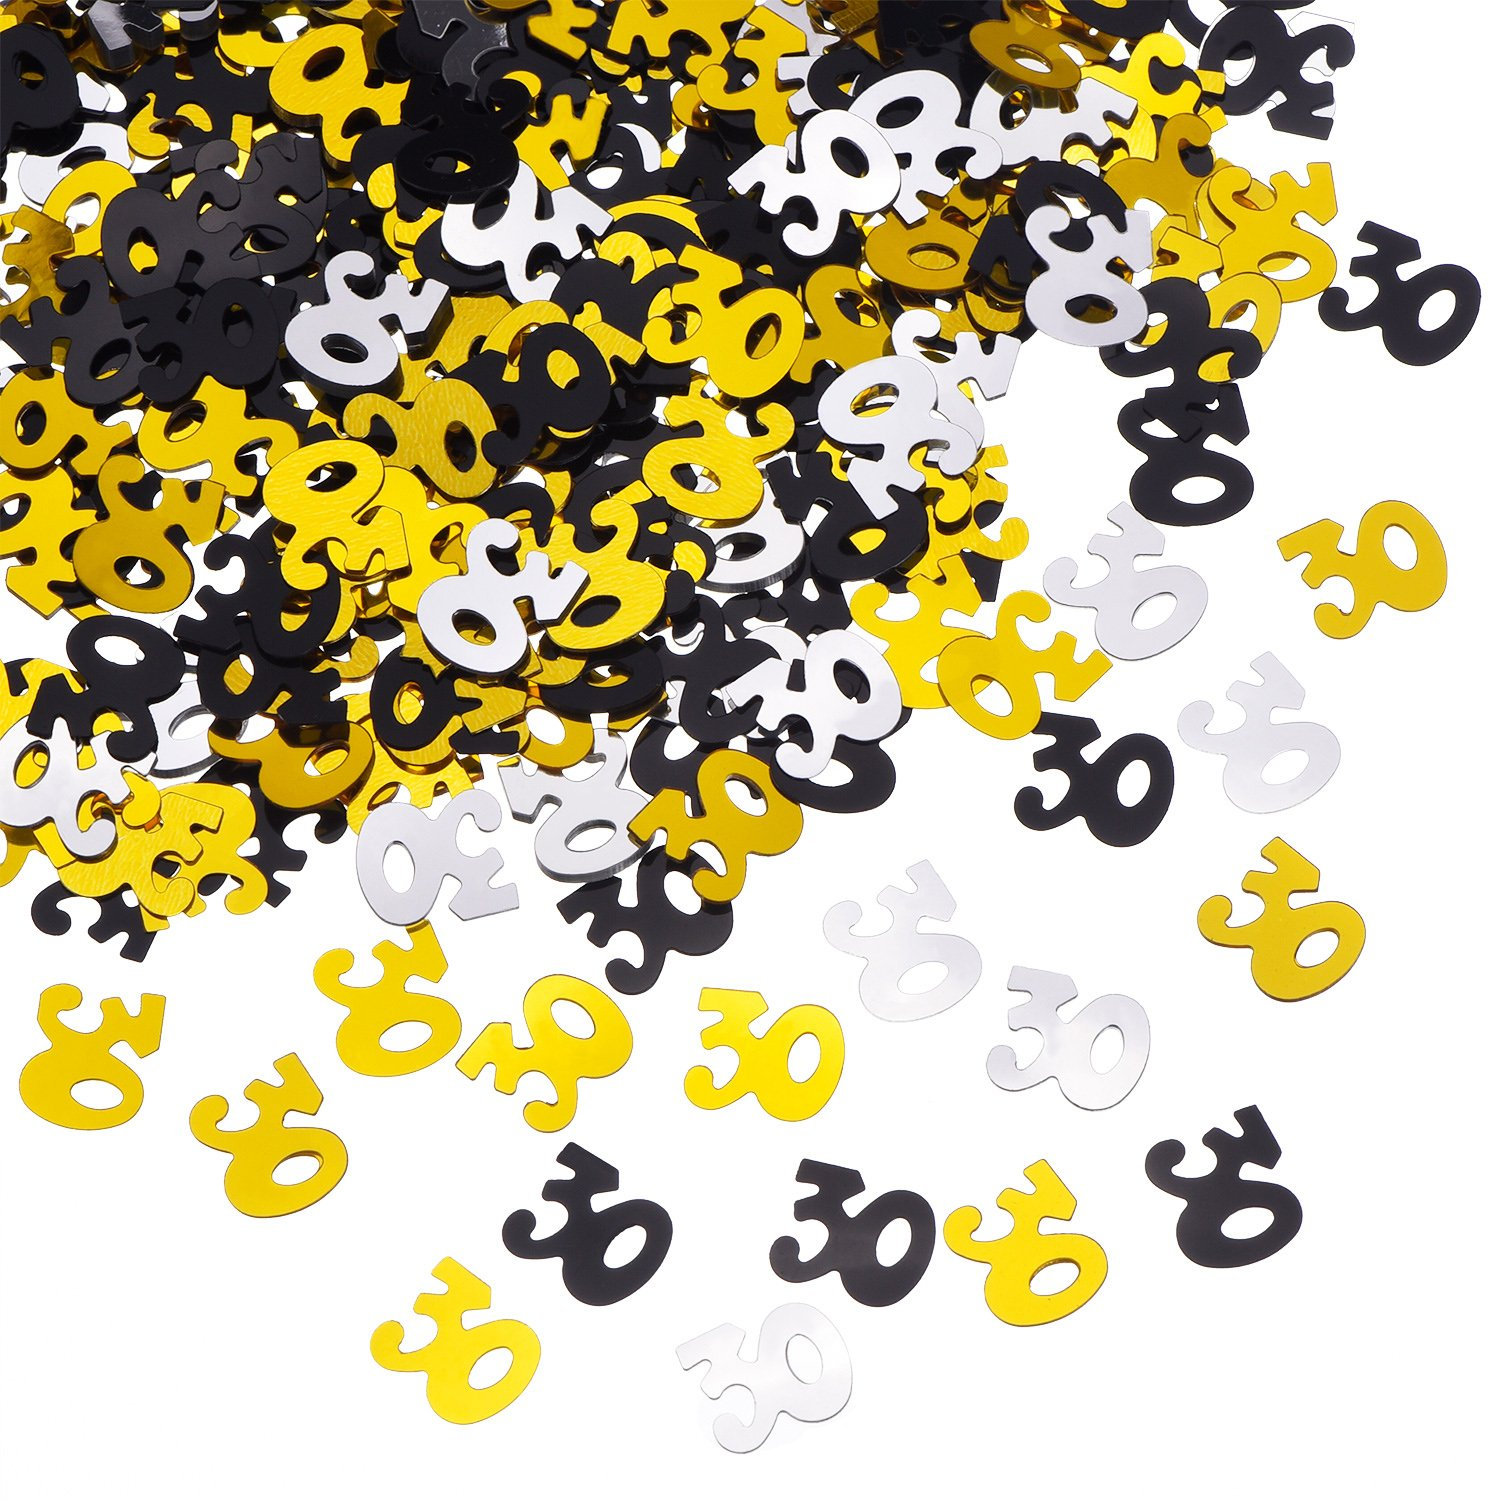 Number 30 Glitter Confetti for 30th Birthday Anniversary Party Supplies Table Decoration, 50 g (1.76 Ounce) Shappy